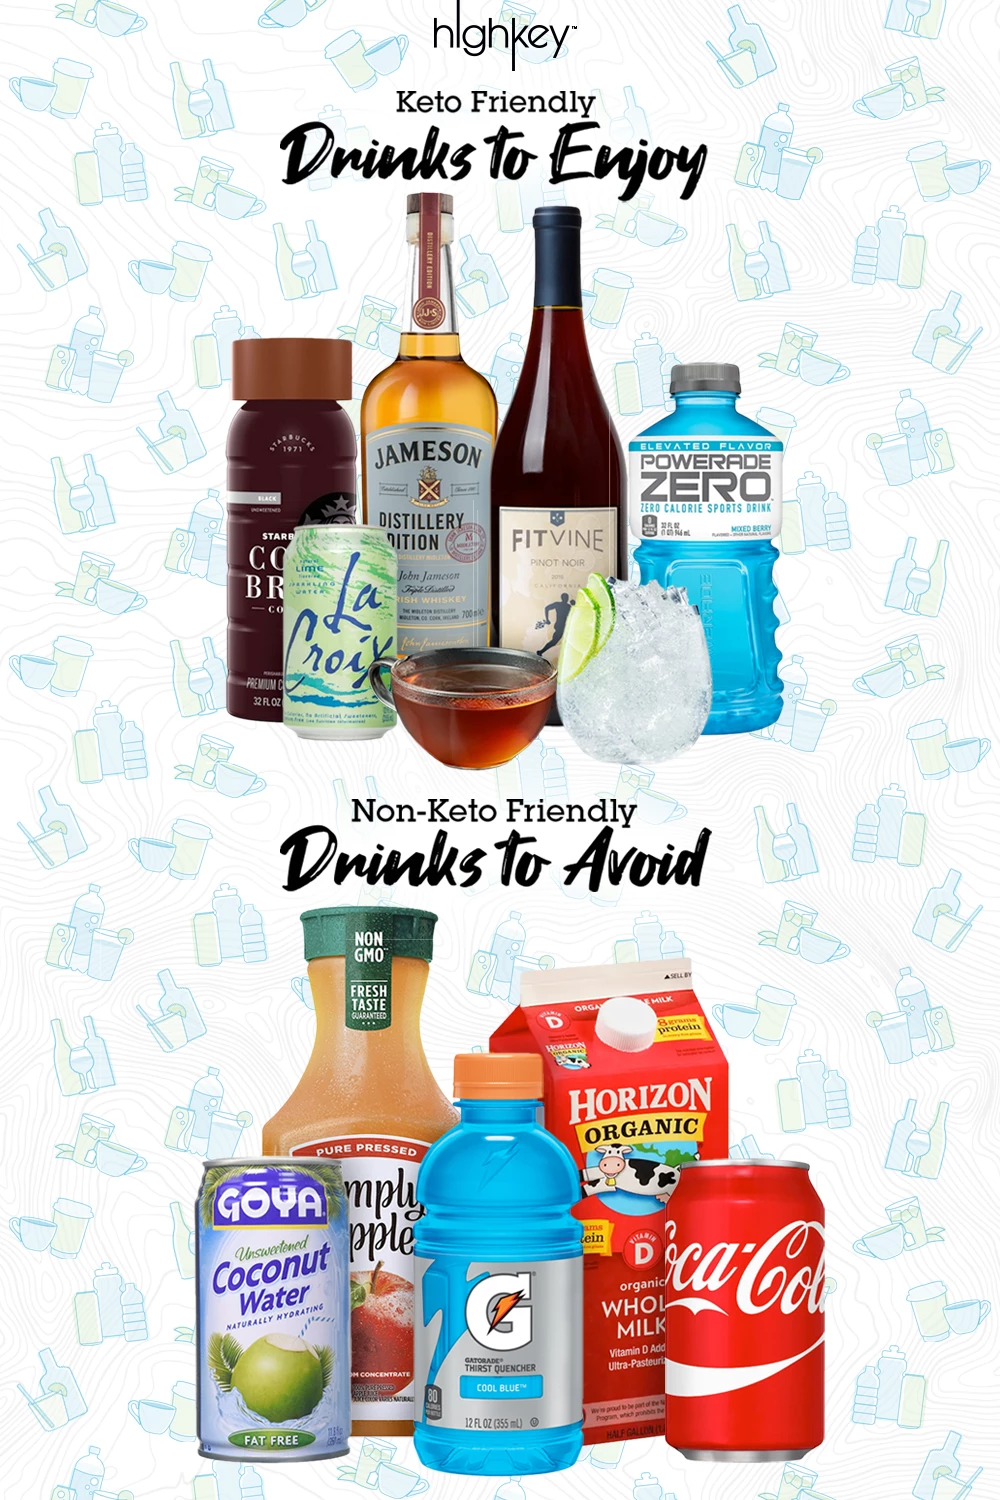 Low Carb, Keto Friendly Drinks What Can You Drink on a